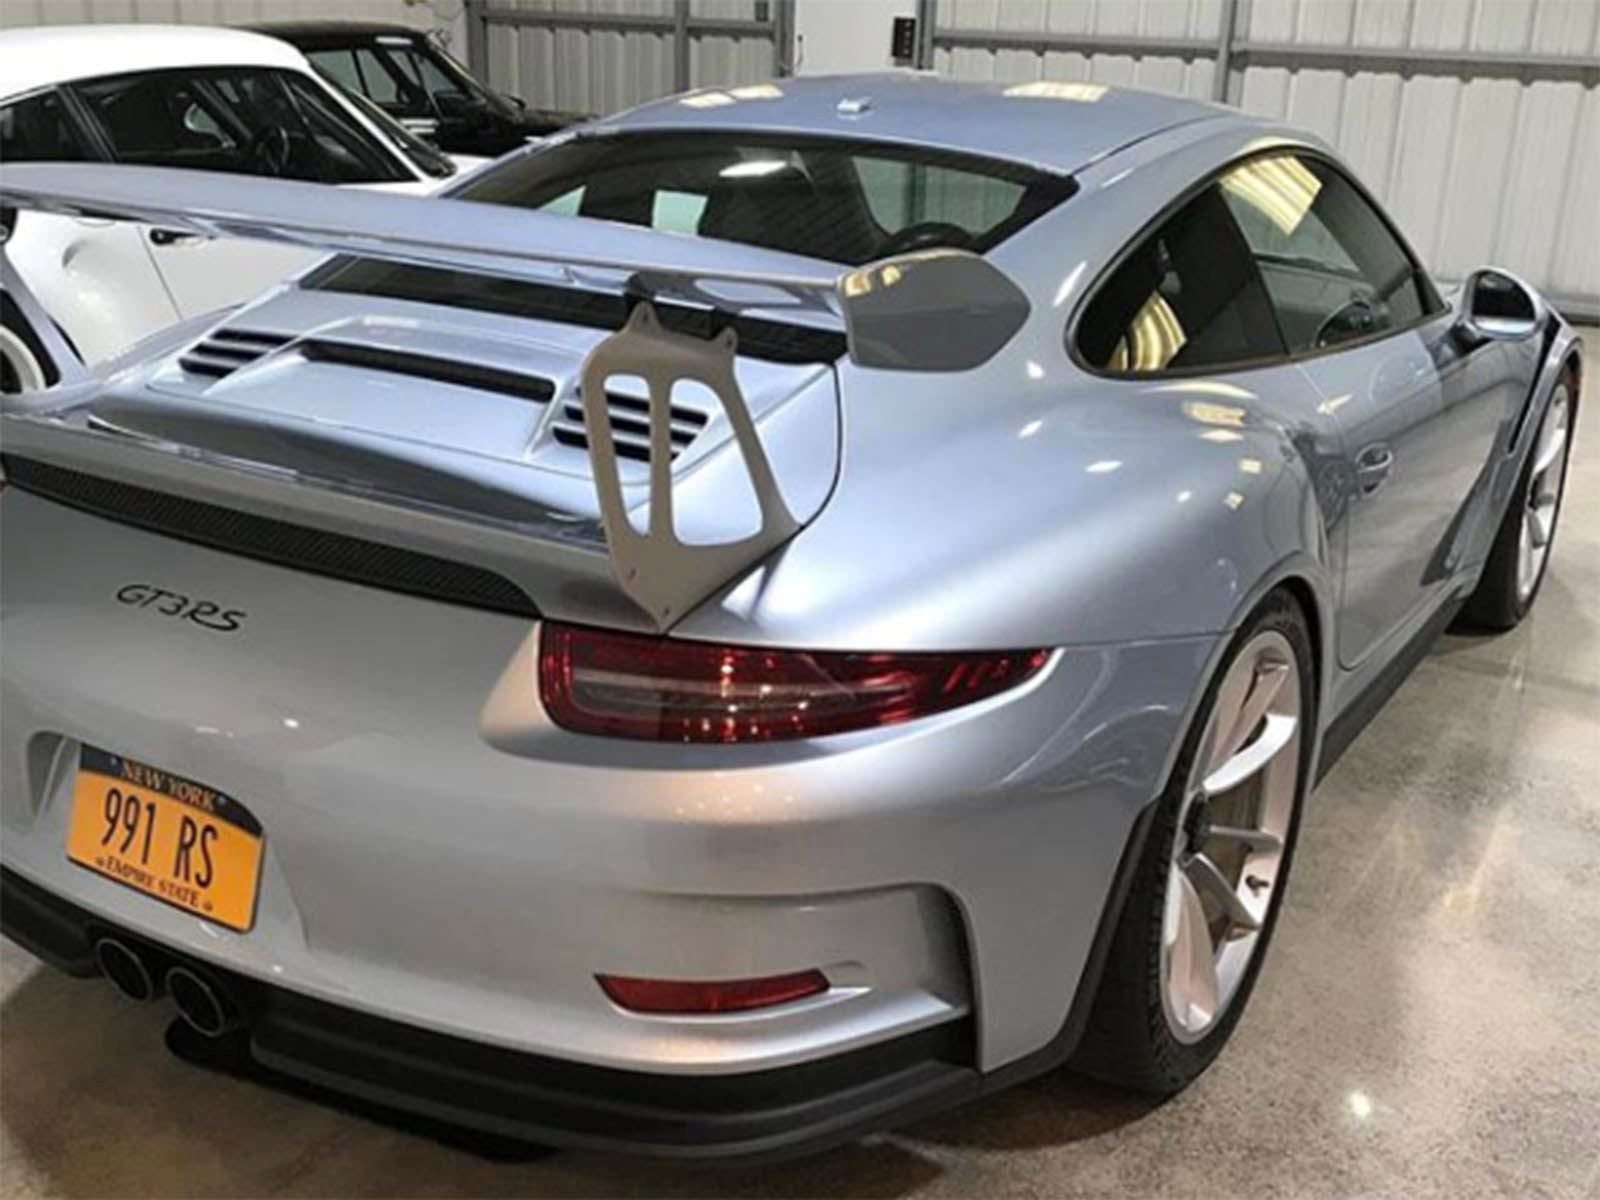 Jerry Seinfeld S 911 Gt3 Rs Is Truly One Of A Kind Carbuzz